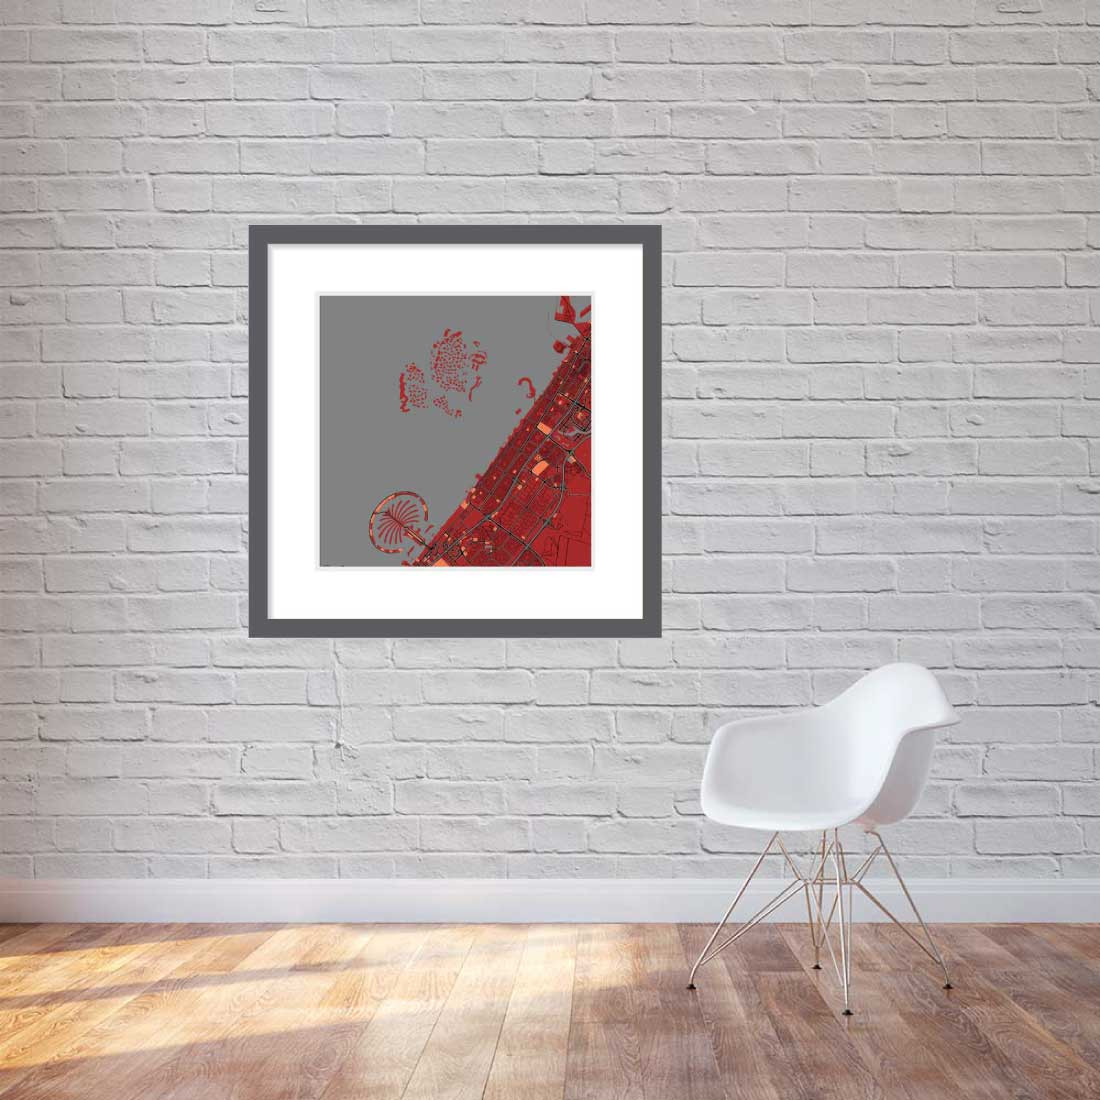 Matt print 90cmx90cm Dubai Stylish Brick